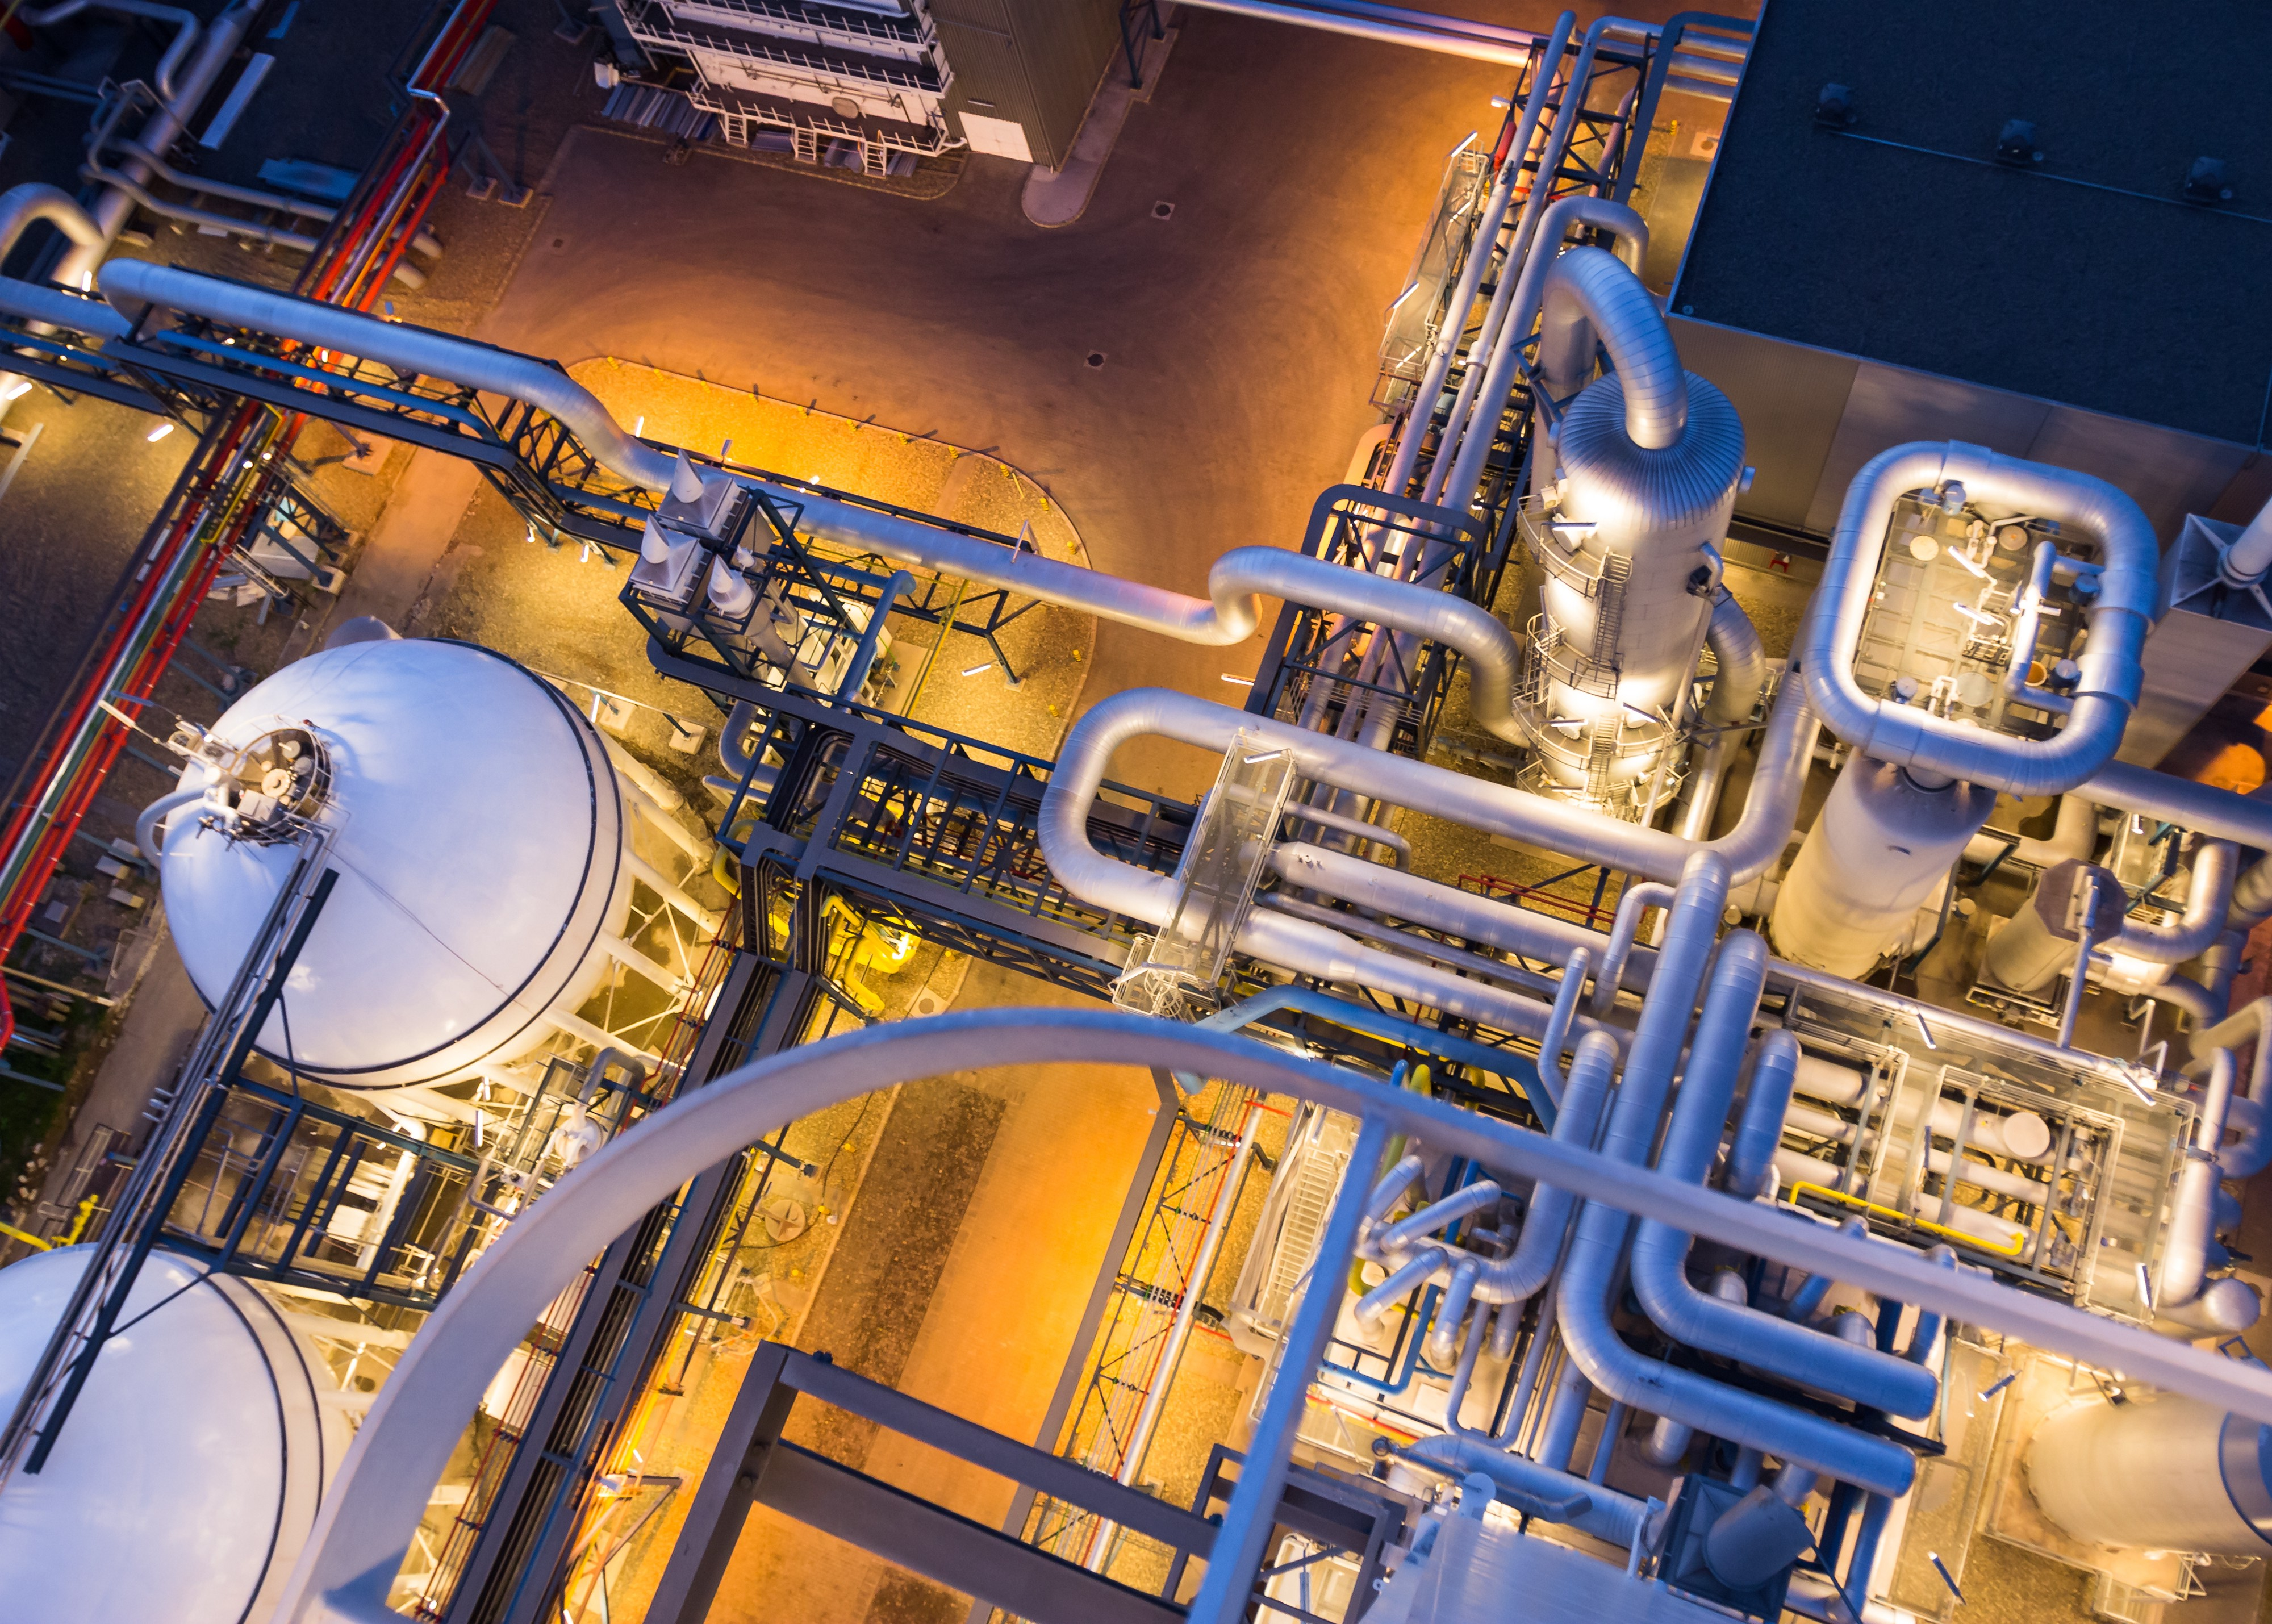 Rapid SCADA: Industrial system has elementary flaw in access